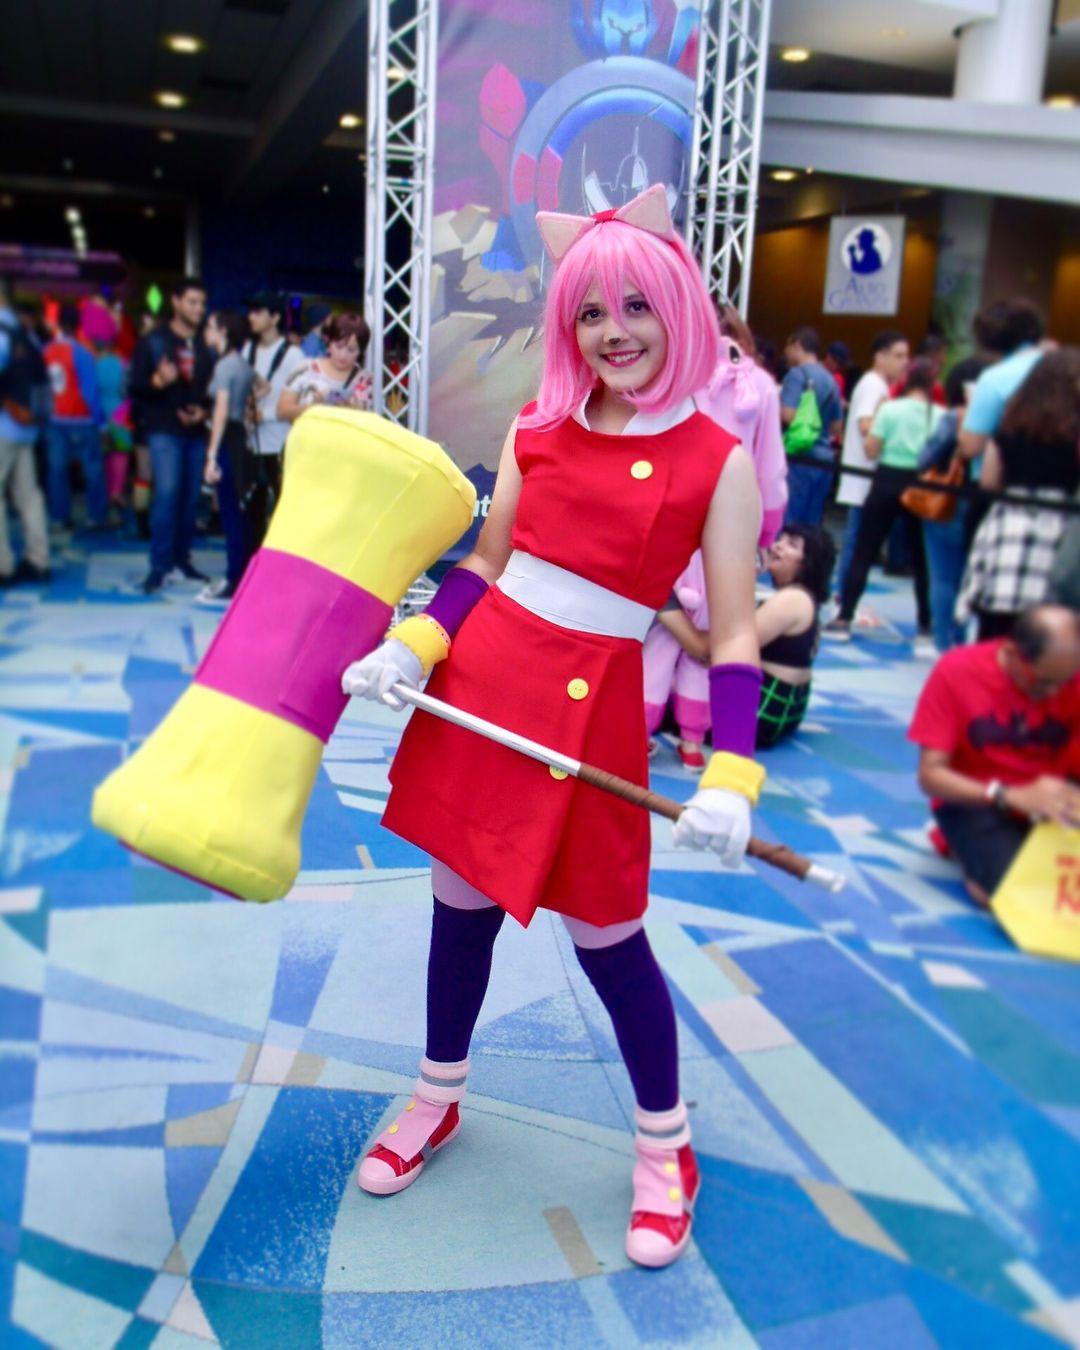 Amy rose boom cosplay #cosplaygirl #cosplay #sonicthehedgehog #amyrose #soniccosplay #amyrosecosplay #sonicboom